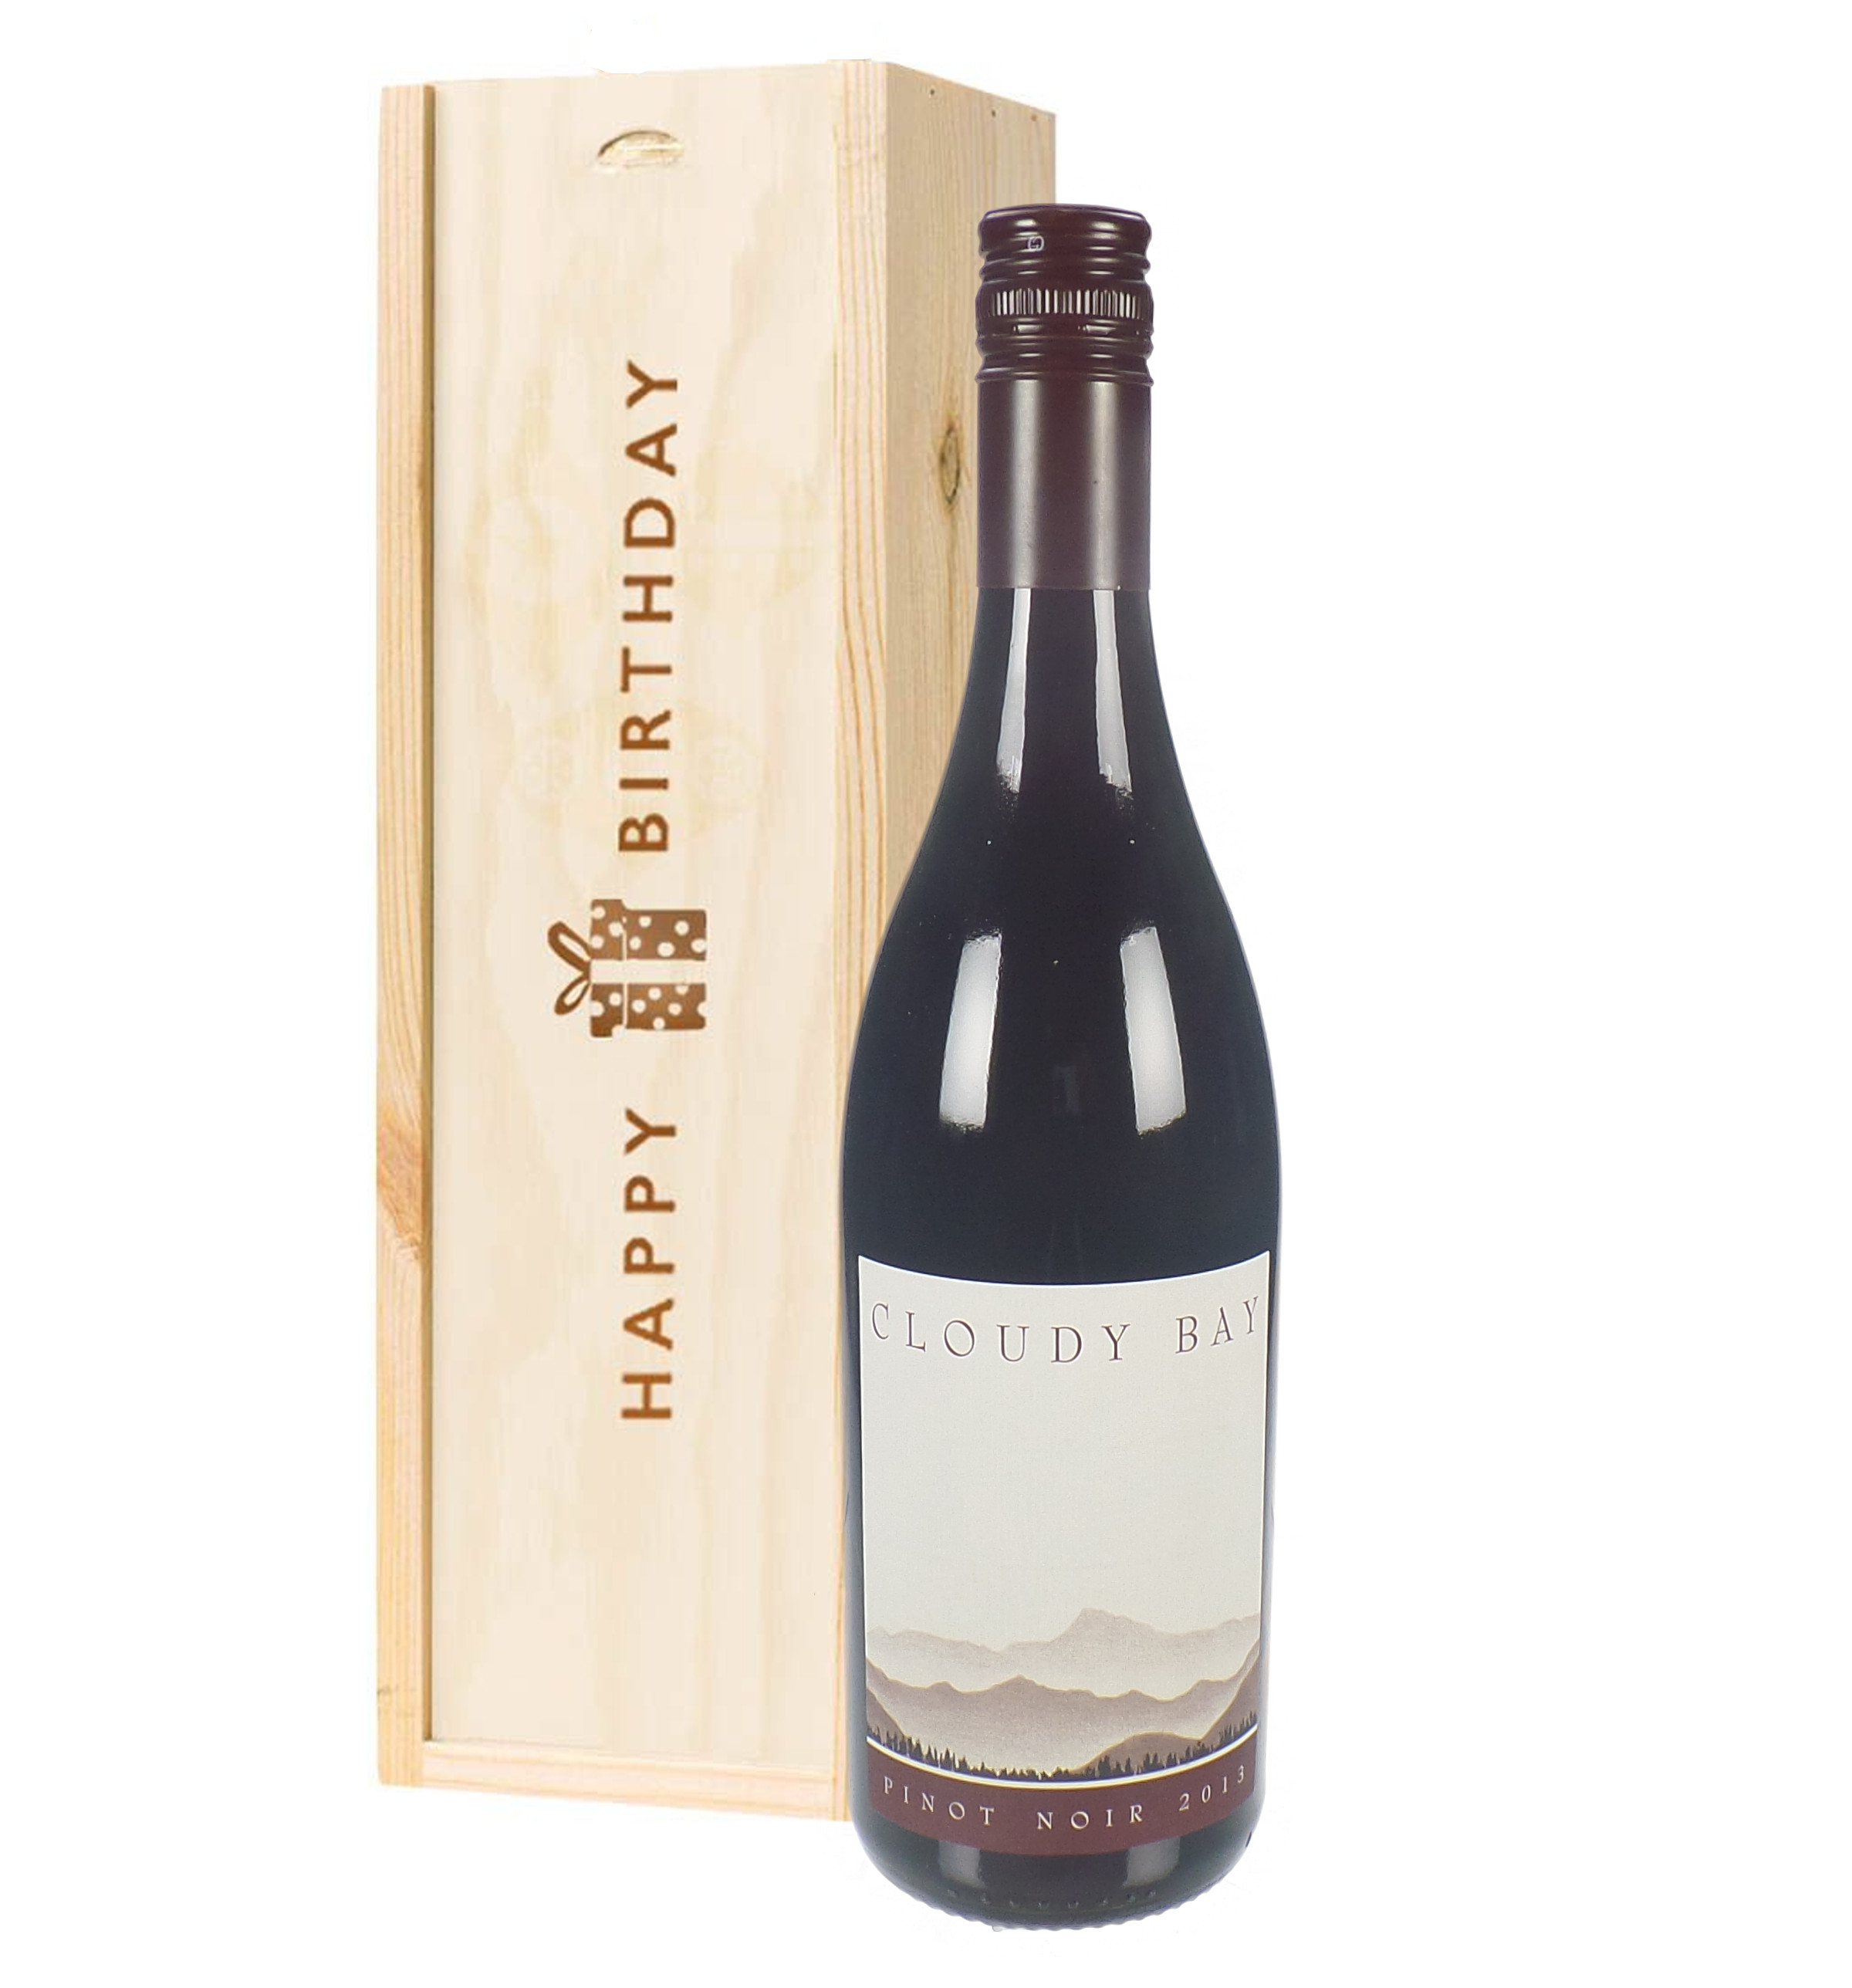 Cloudy Bay Pinot Noir Red Wine Birthday Gift In Wooden Box